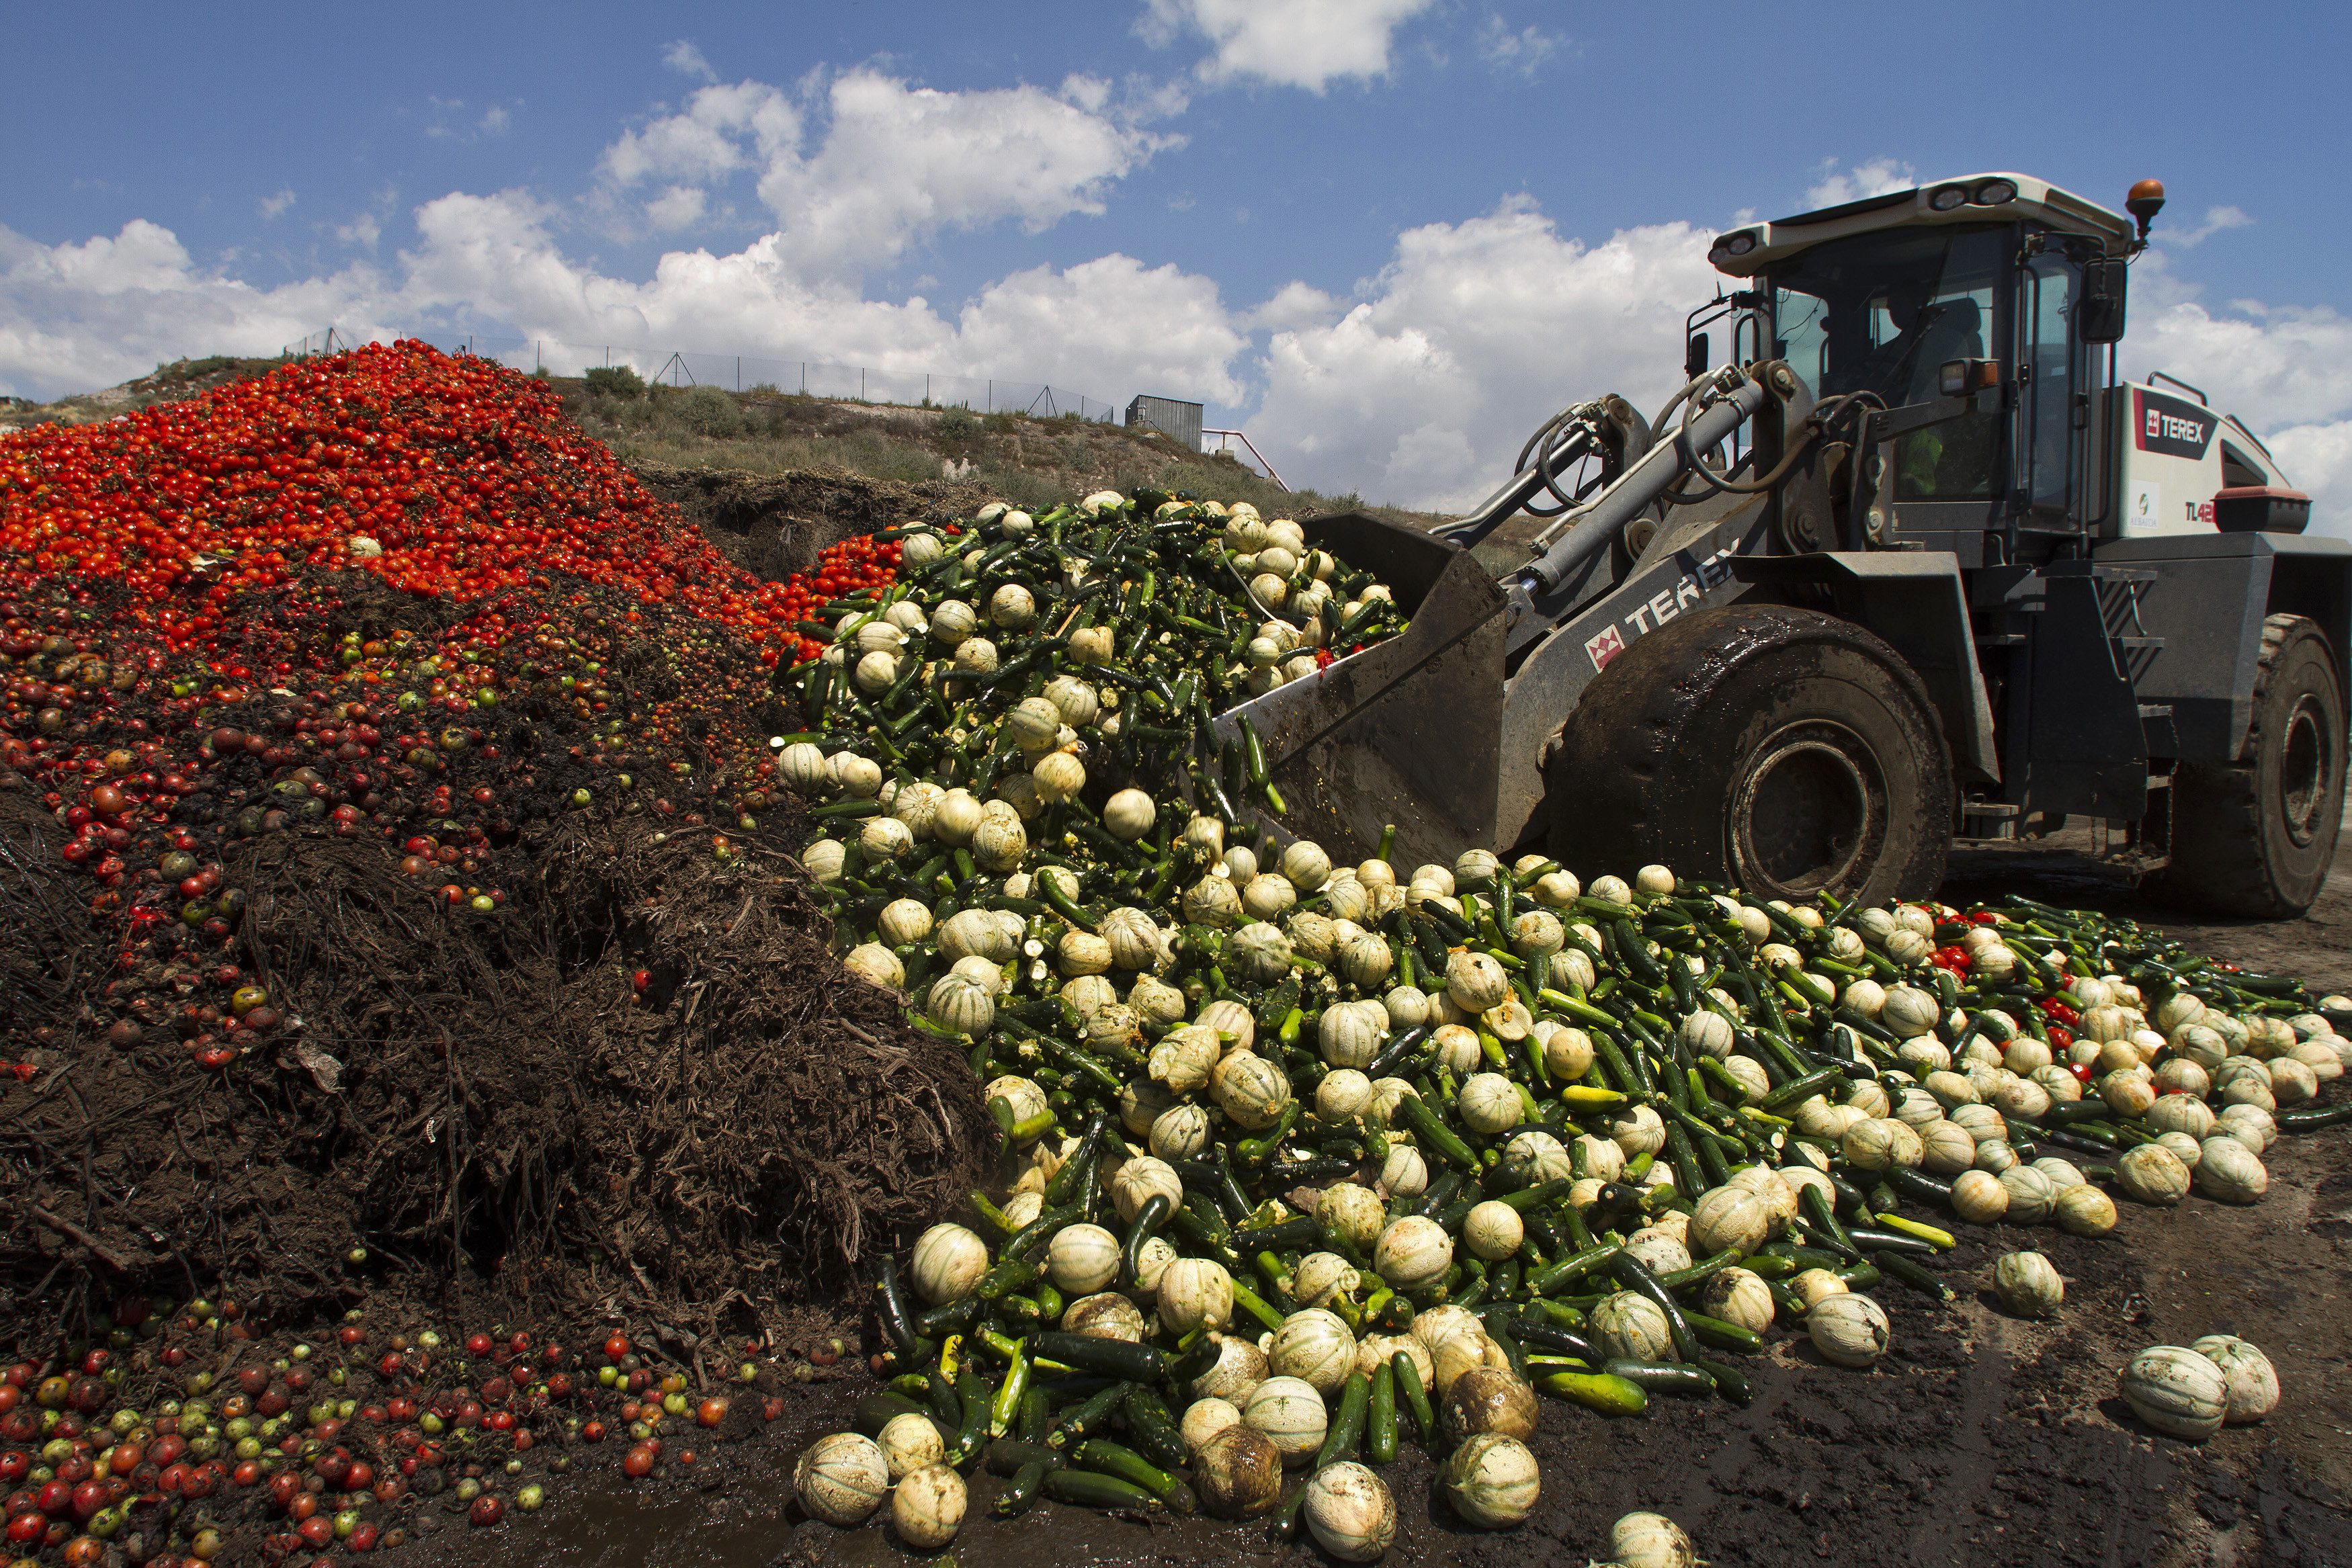 """A digger unloads discarded vegetables into a pile of vegetable residue at the Albahida vegetable recycling plant in Nijar, in the southern Spanish region of Almeria, June 8, 2011. On Tuesday the European Union offered farmers 150 million euros in aid to reimburse producers who have been unable to sell fruit and salad vegetables for nearly two weeks after being erroneously blamed for an E.coli outbreak in Germany"""". They want to fob us off with 150 million (euros). It's shameful, it's humiliating when losses in our country are above 350 million,"""" Miguel Lopez, general secretary of the COAG farmers' union told reporters.REUTERS/Francisco Bonilla (SPAIN - Tags: HEALTH AGRICULTURE BUSINESS IMAGES OF THE DAY) - GM1E769000M02"""